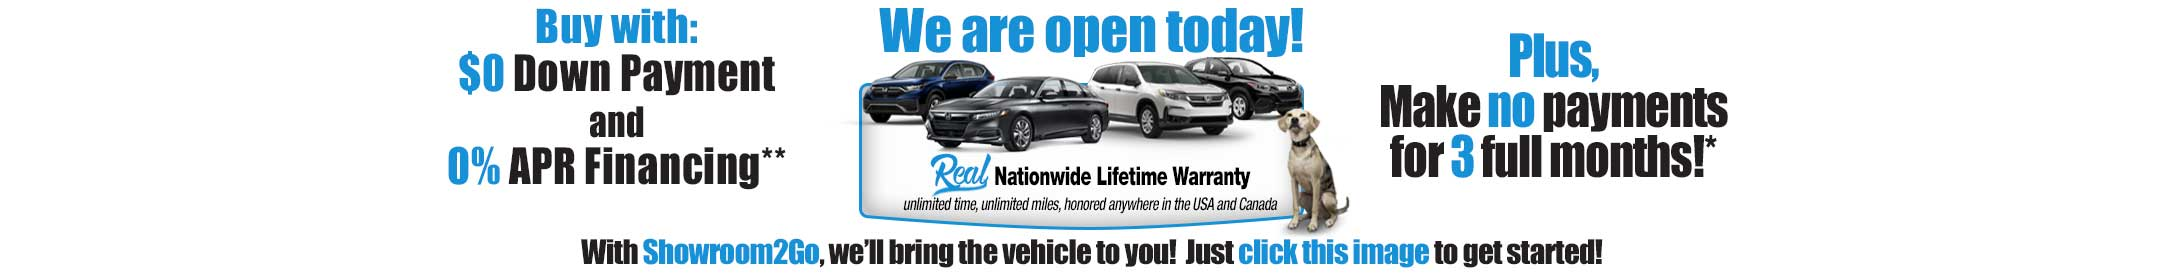 We are open today! Click here to go to showroom to go